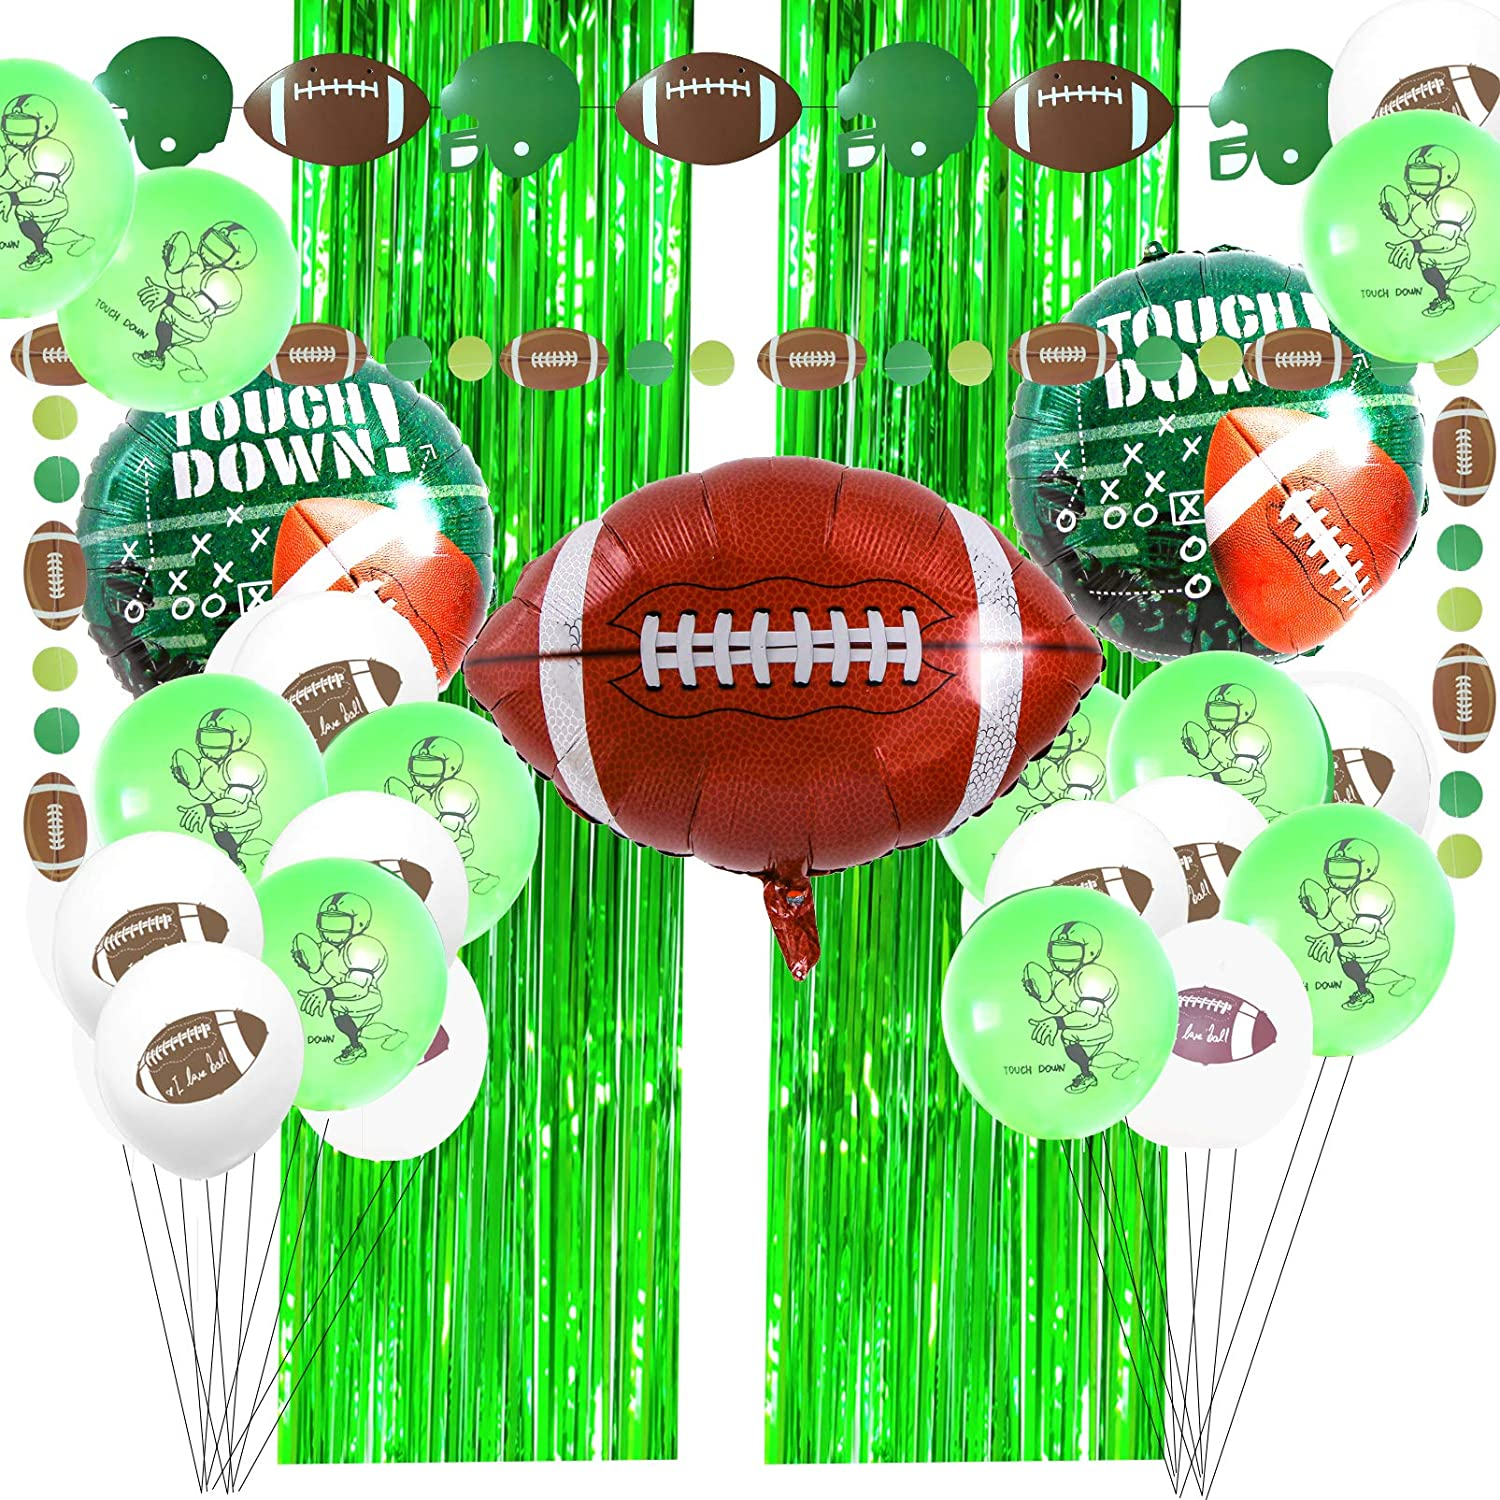 Game Day American Football Party Decorations Include Football Garland Banner,2 Green Foil Fringe Curtains(3.2'x8.3'),Football Balloons for Kids Boys Super Bowl Sport Theme Game Day Decorations